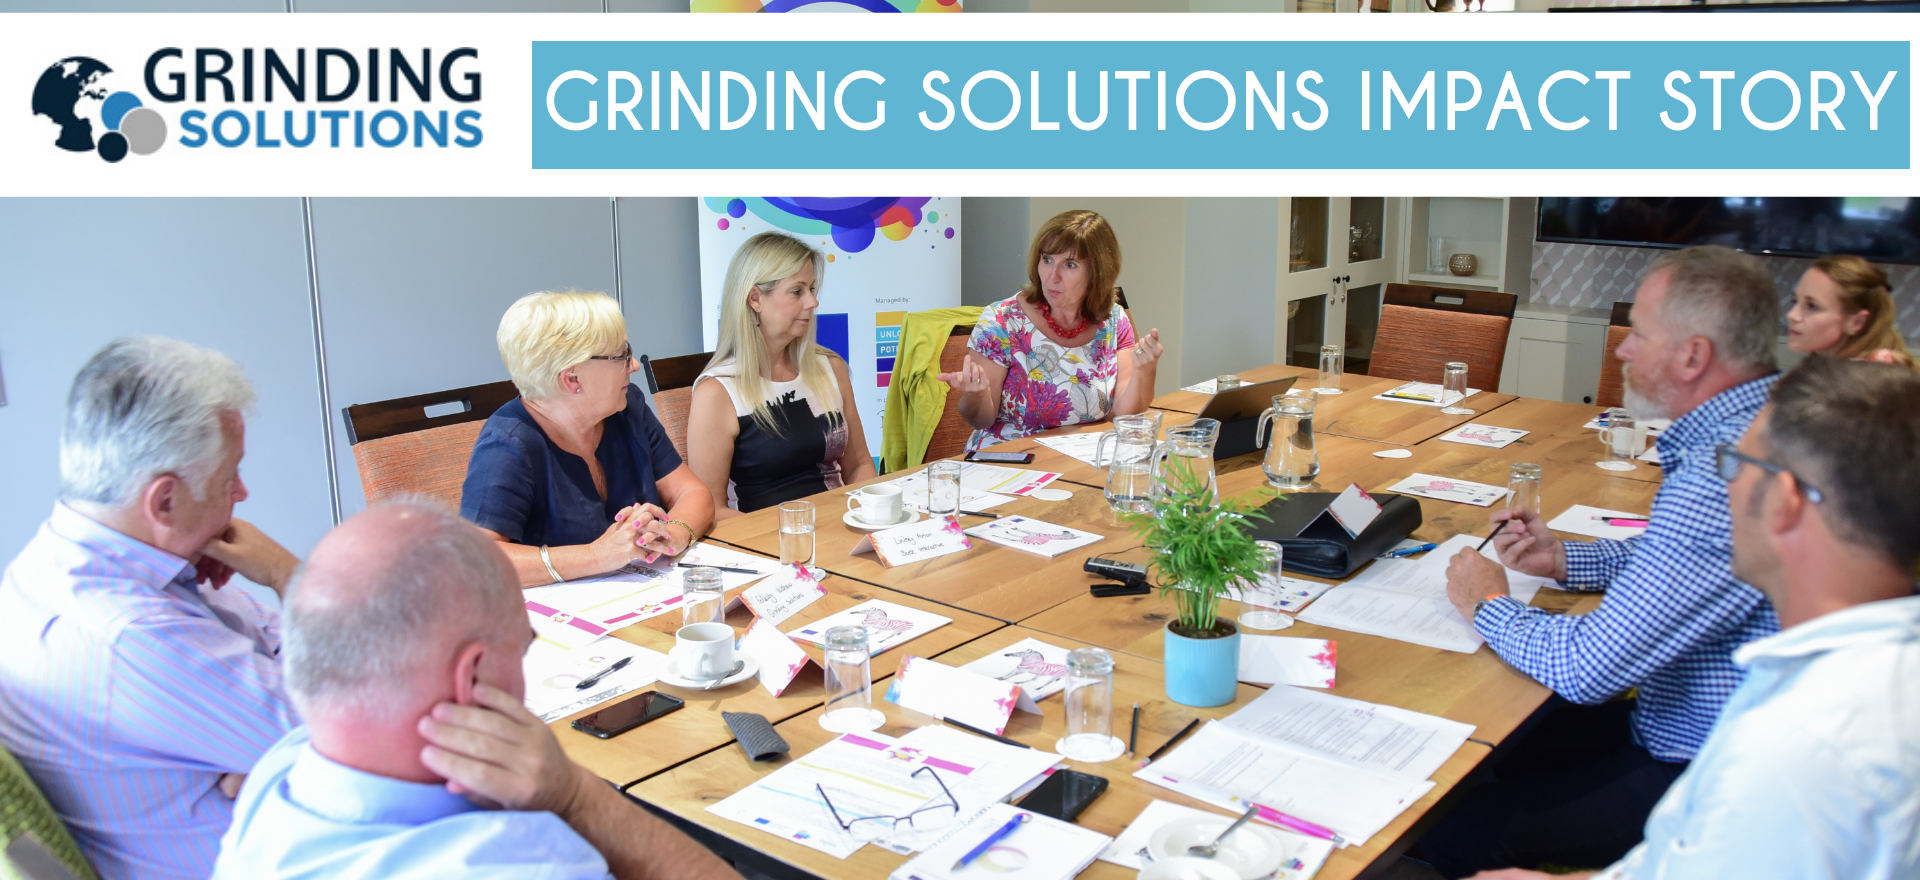 Grinding solutions impact story